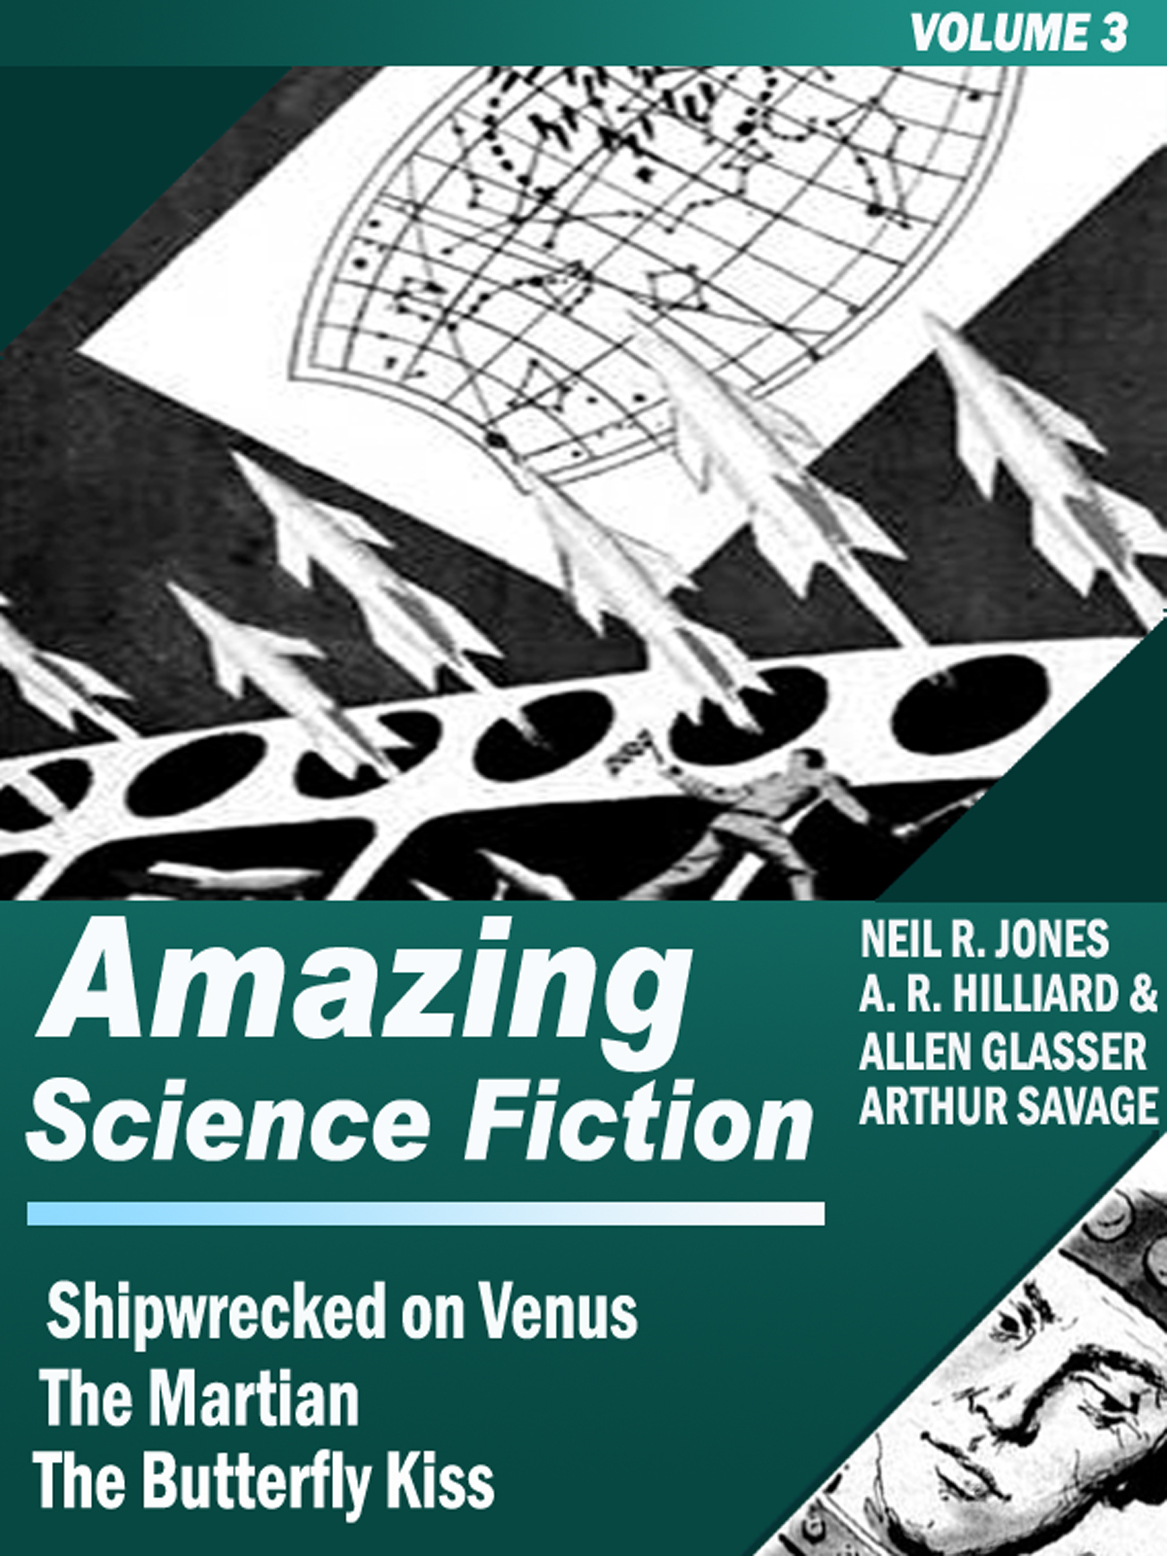 Amazing Science Fiction - Volume 3 (Shipwrecked on Venus, The Martian, The Butterfly Kiss)